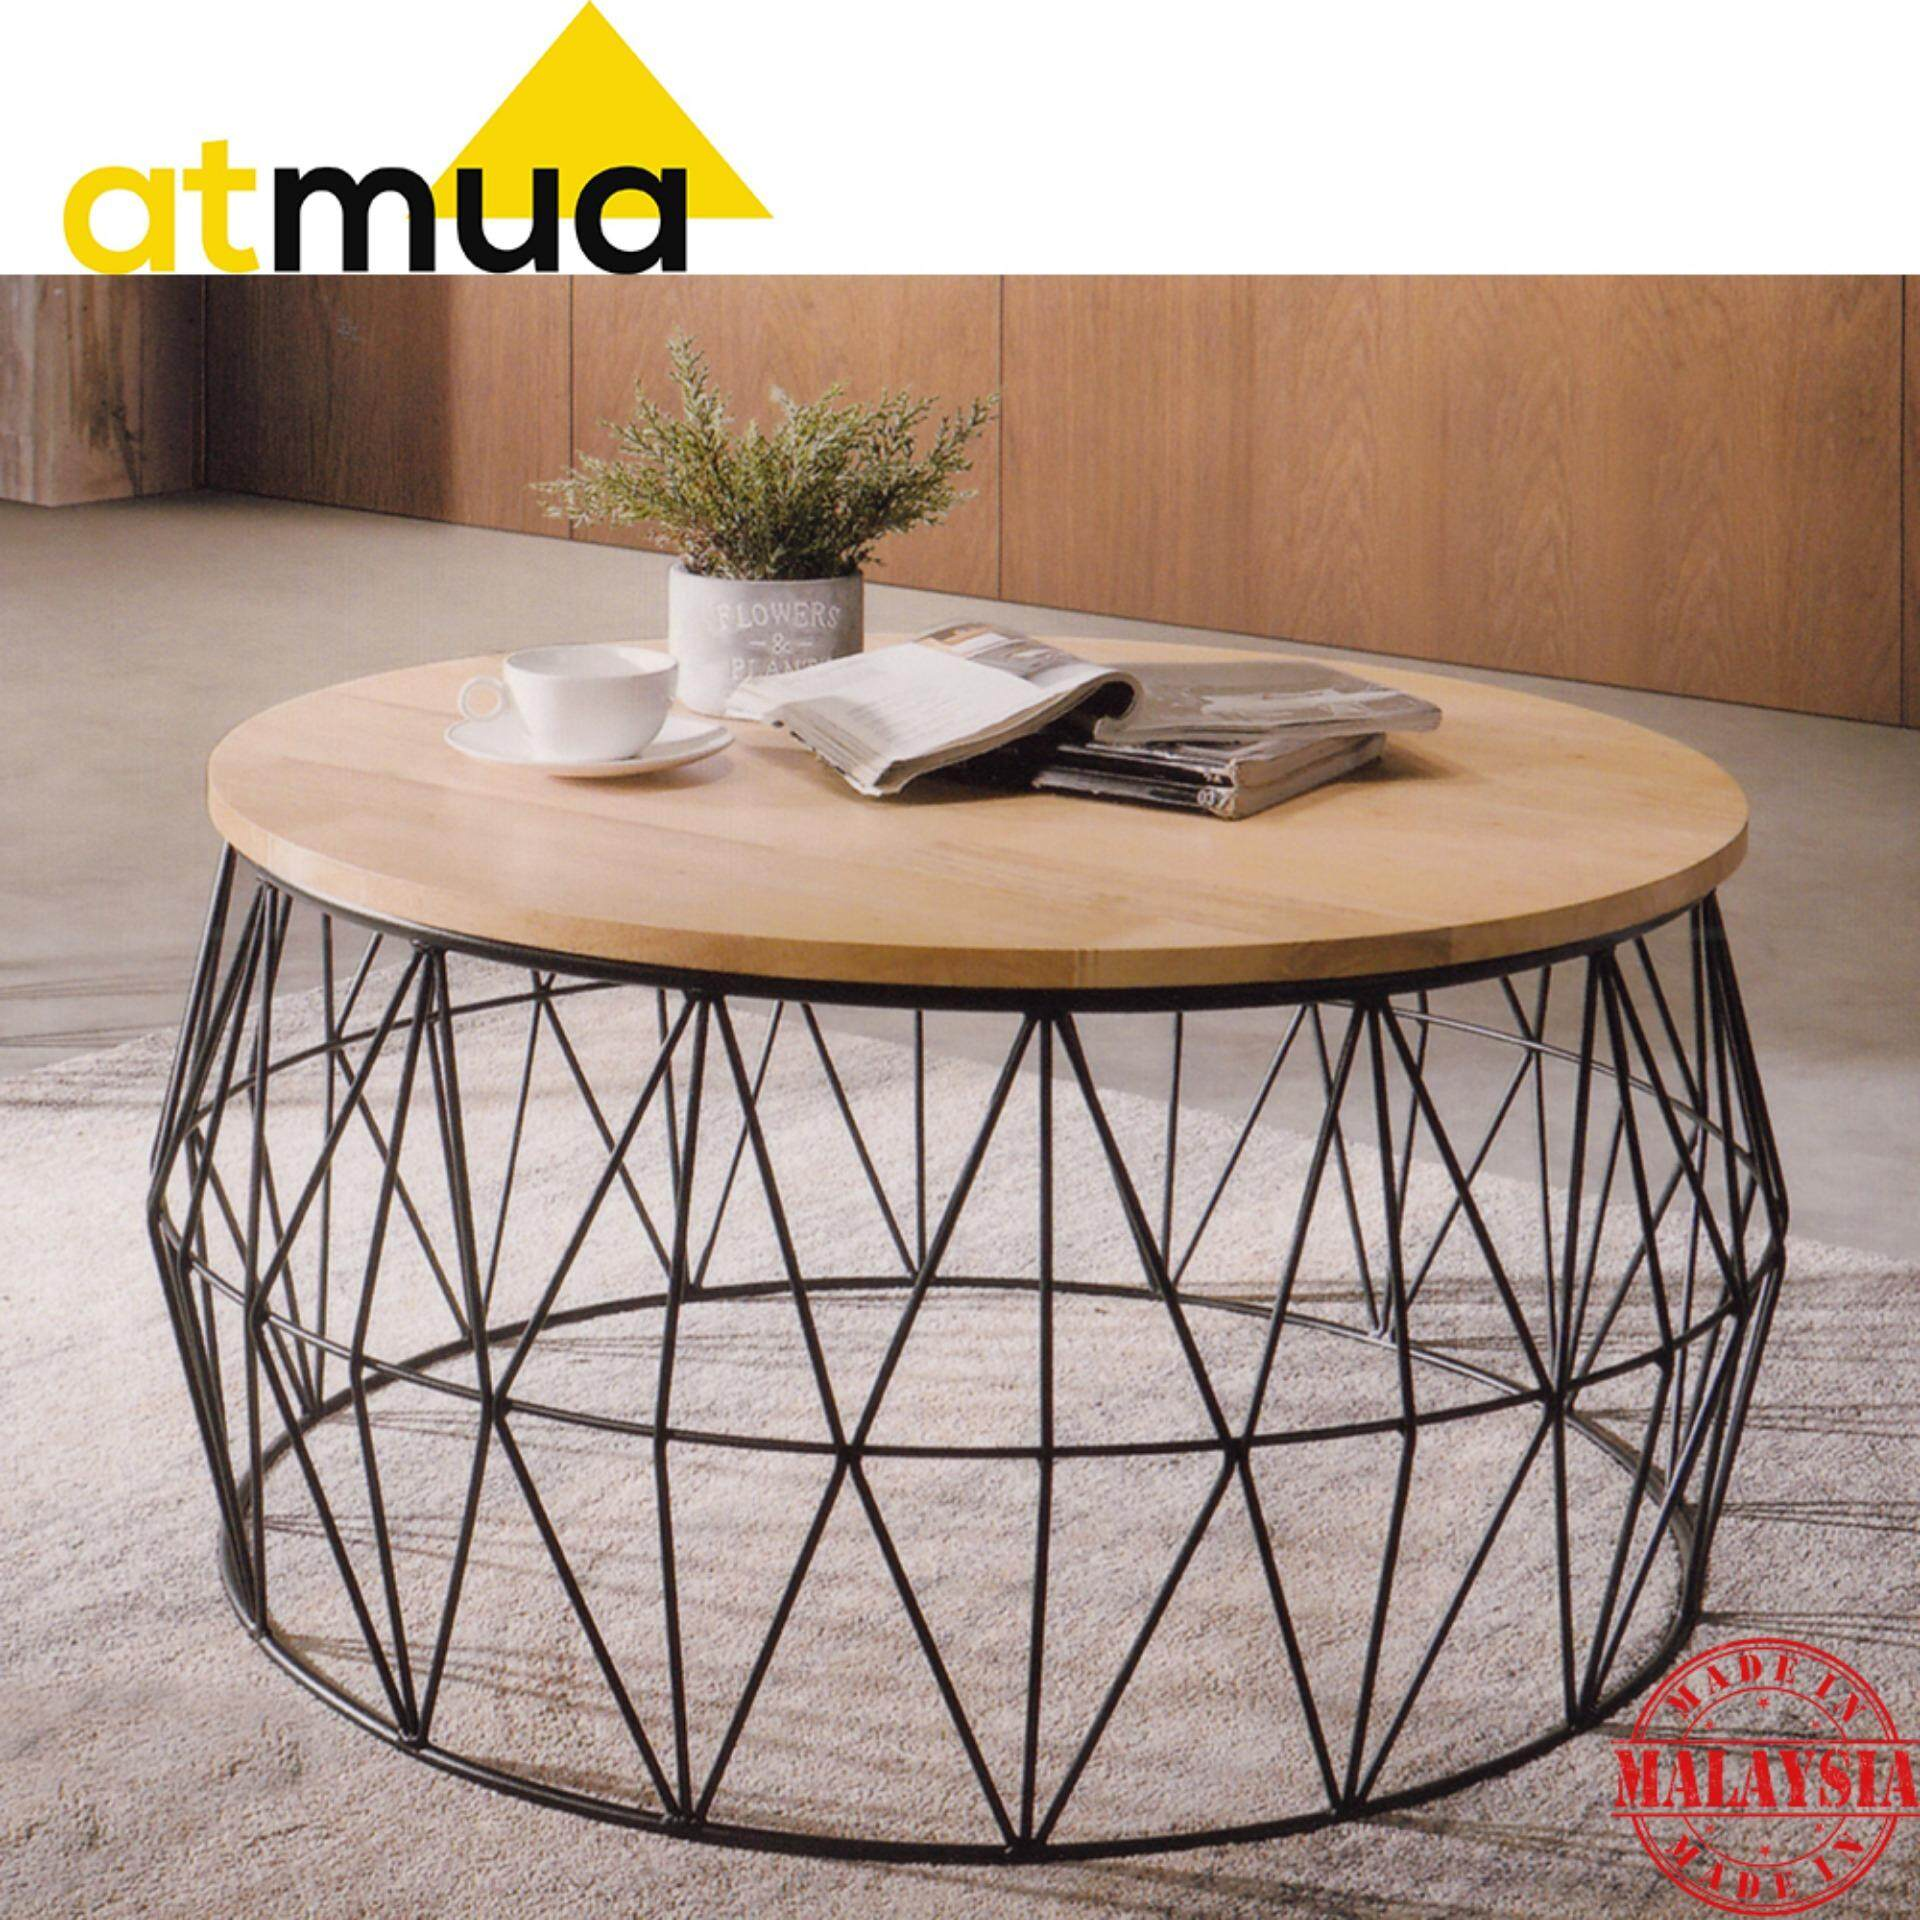 Greenwich Round Coffee Table Choice Of Size: Home Coffee Table Online In Malaysia